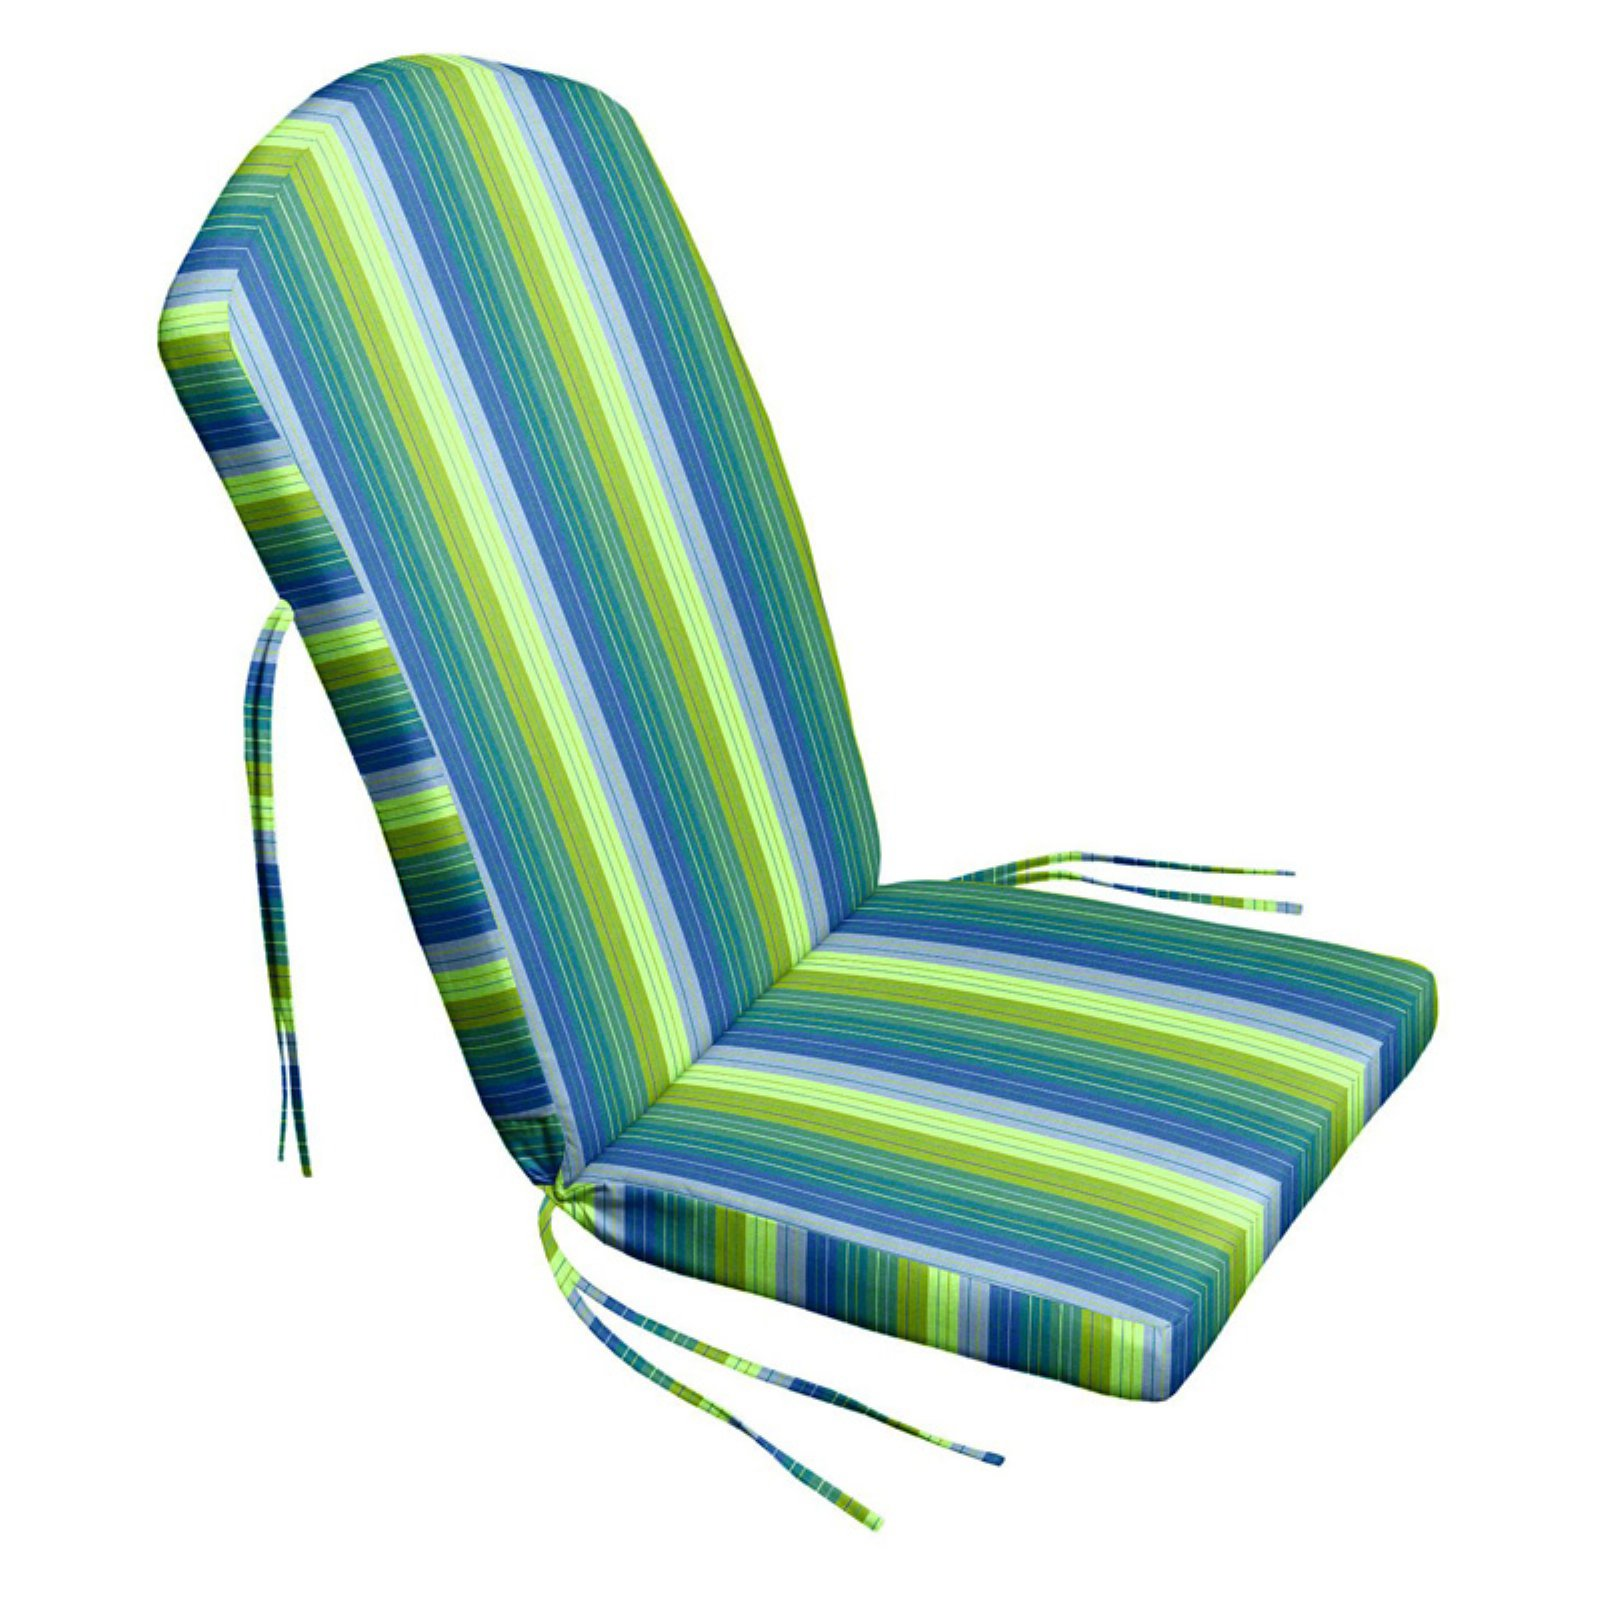 Sunbrella Adirondack Chair Cushions Cushion Source Sunbrella Striped 47 X 21 In Adirondack